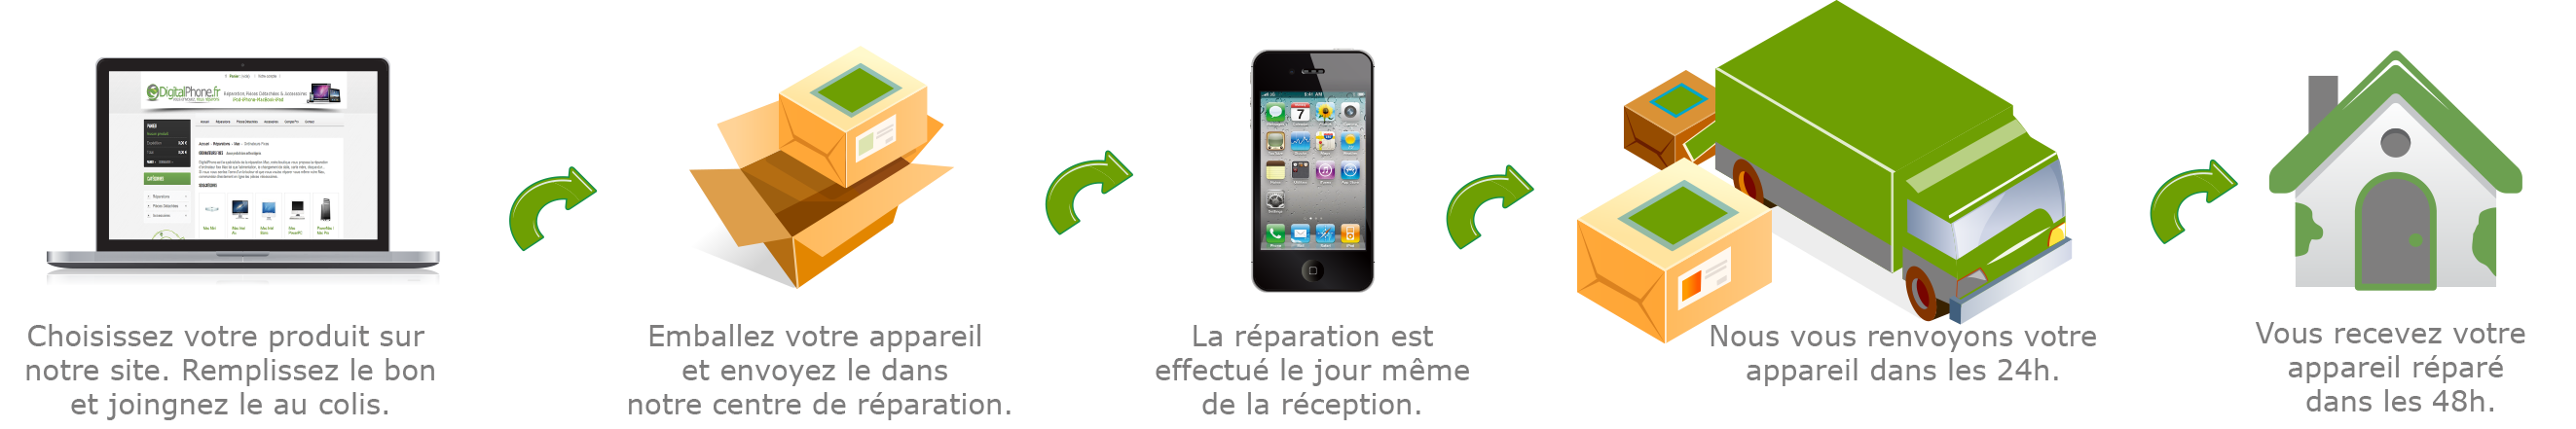 procedure denvoi reparation